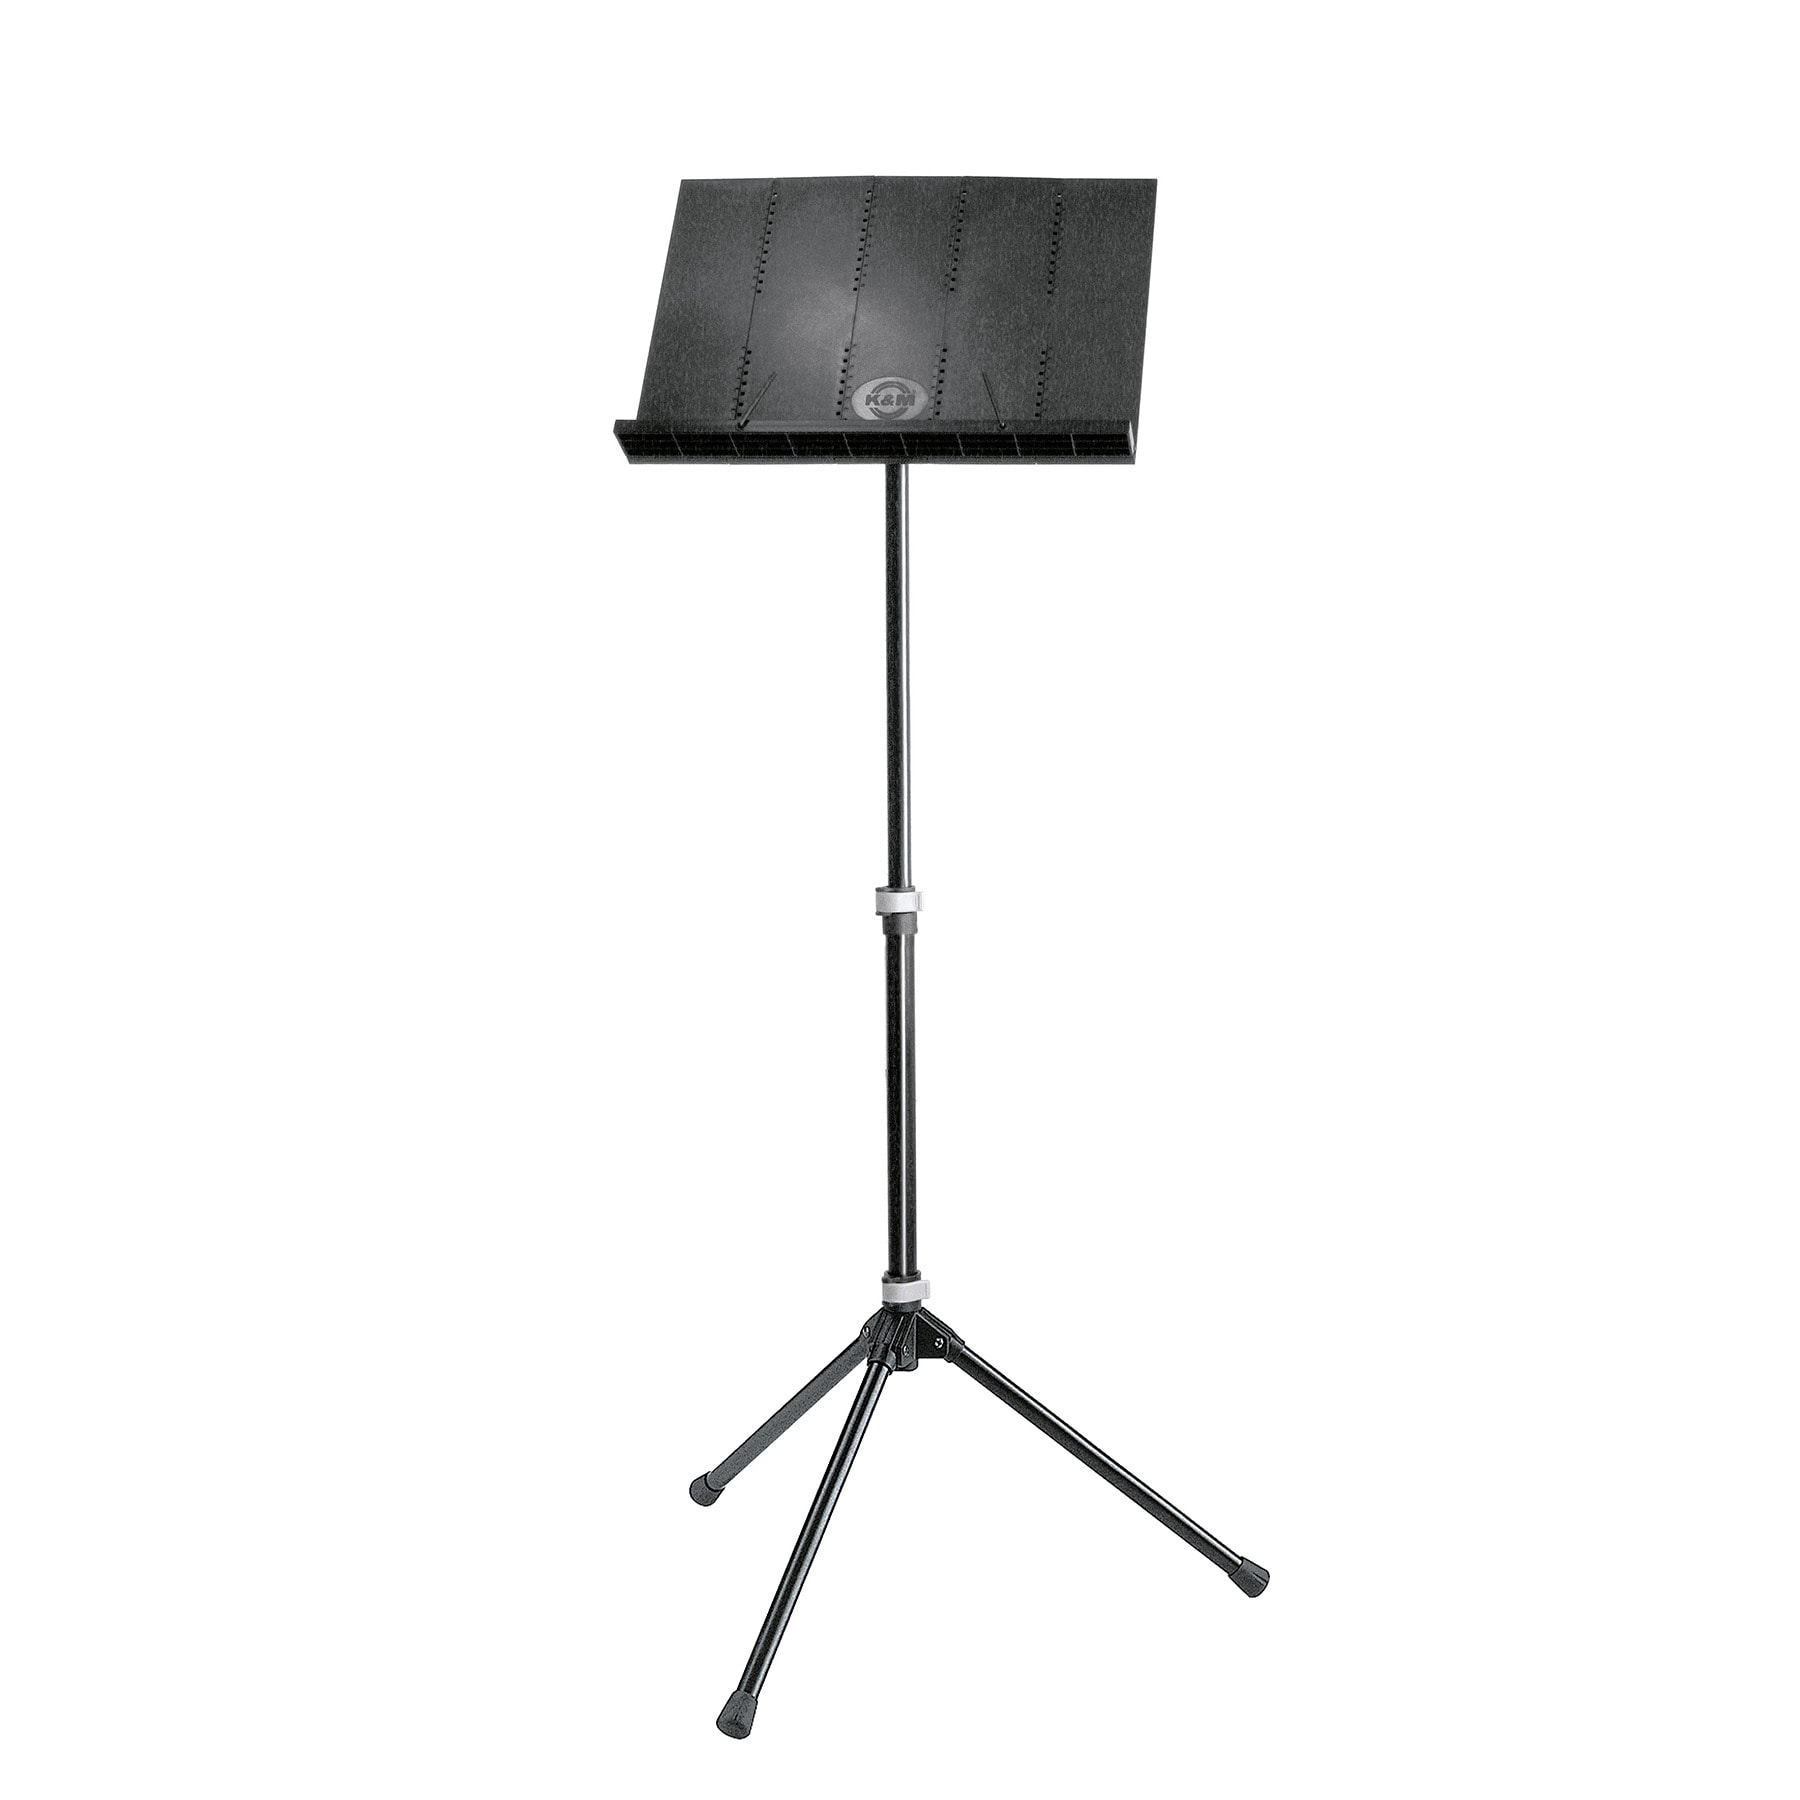 KM12120 - Orchestra music stand